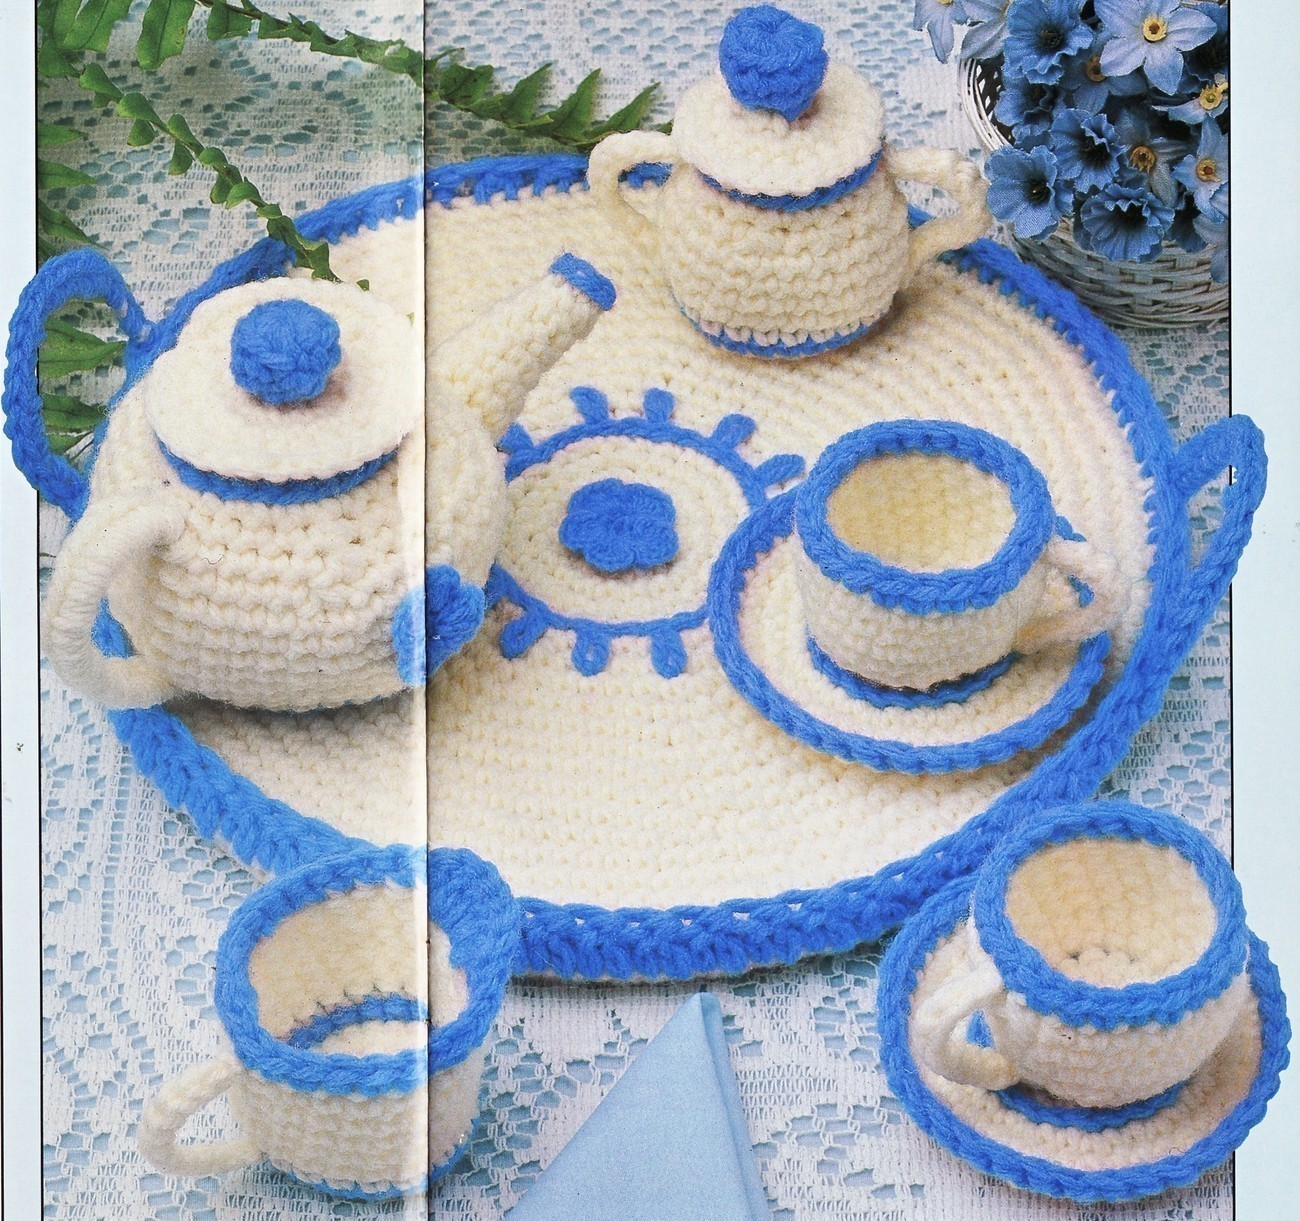 Free Amigurumi crochet patterns: Cup and Saucer